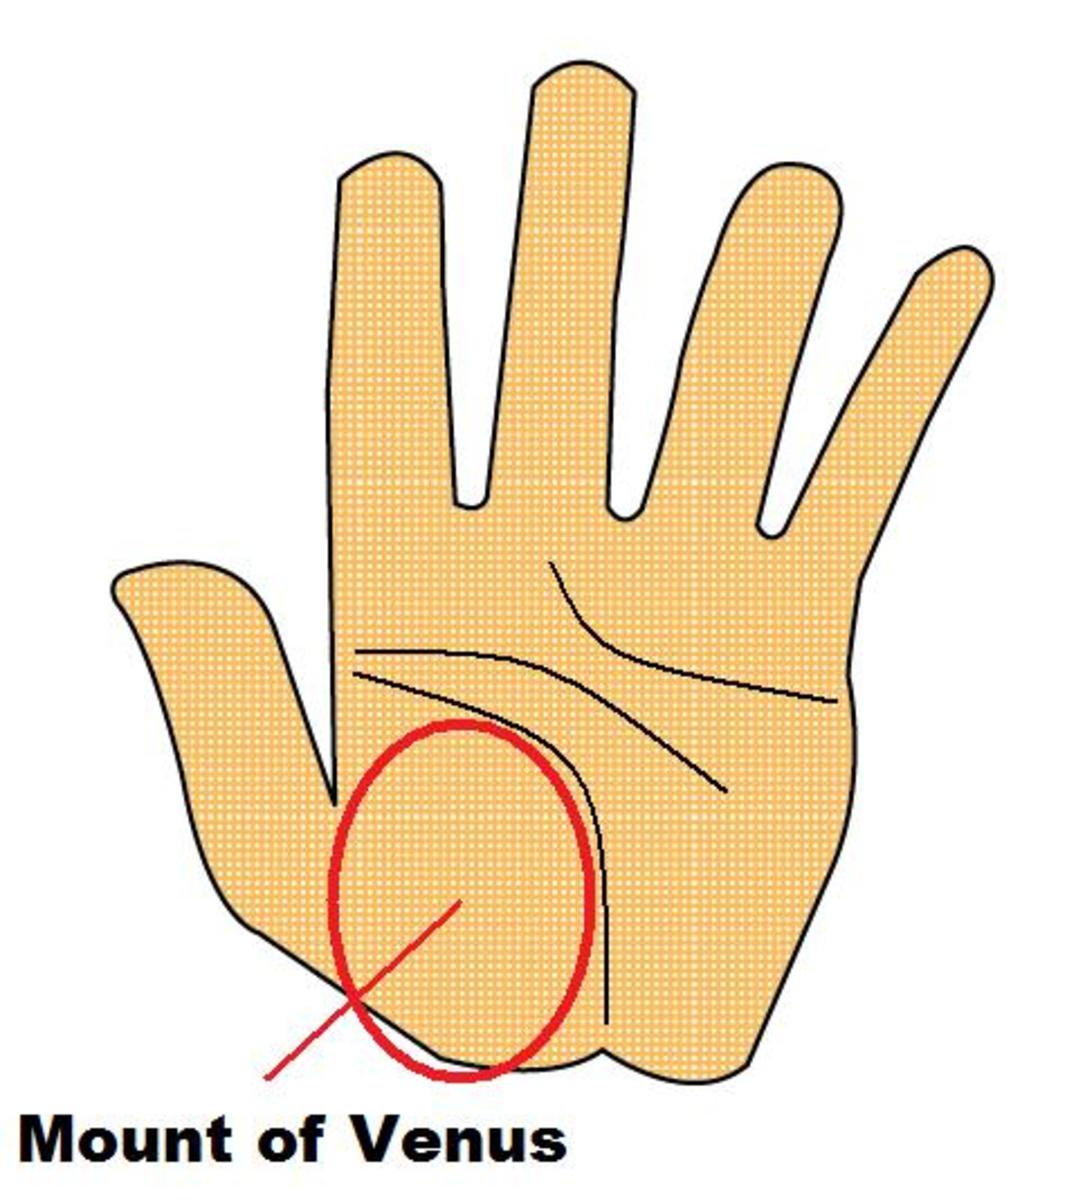 Signs in Palmistry that Can Reveal a Person Who Have Criminal or Violent Tendencies